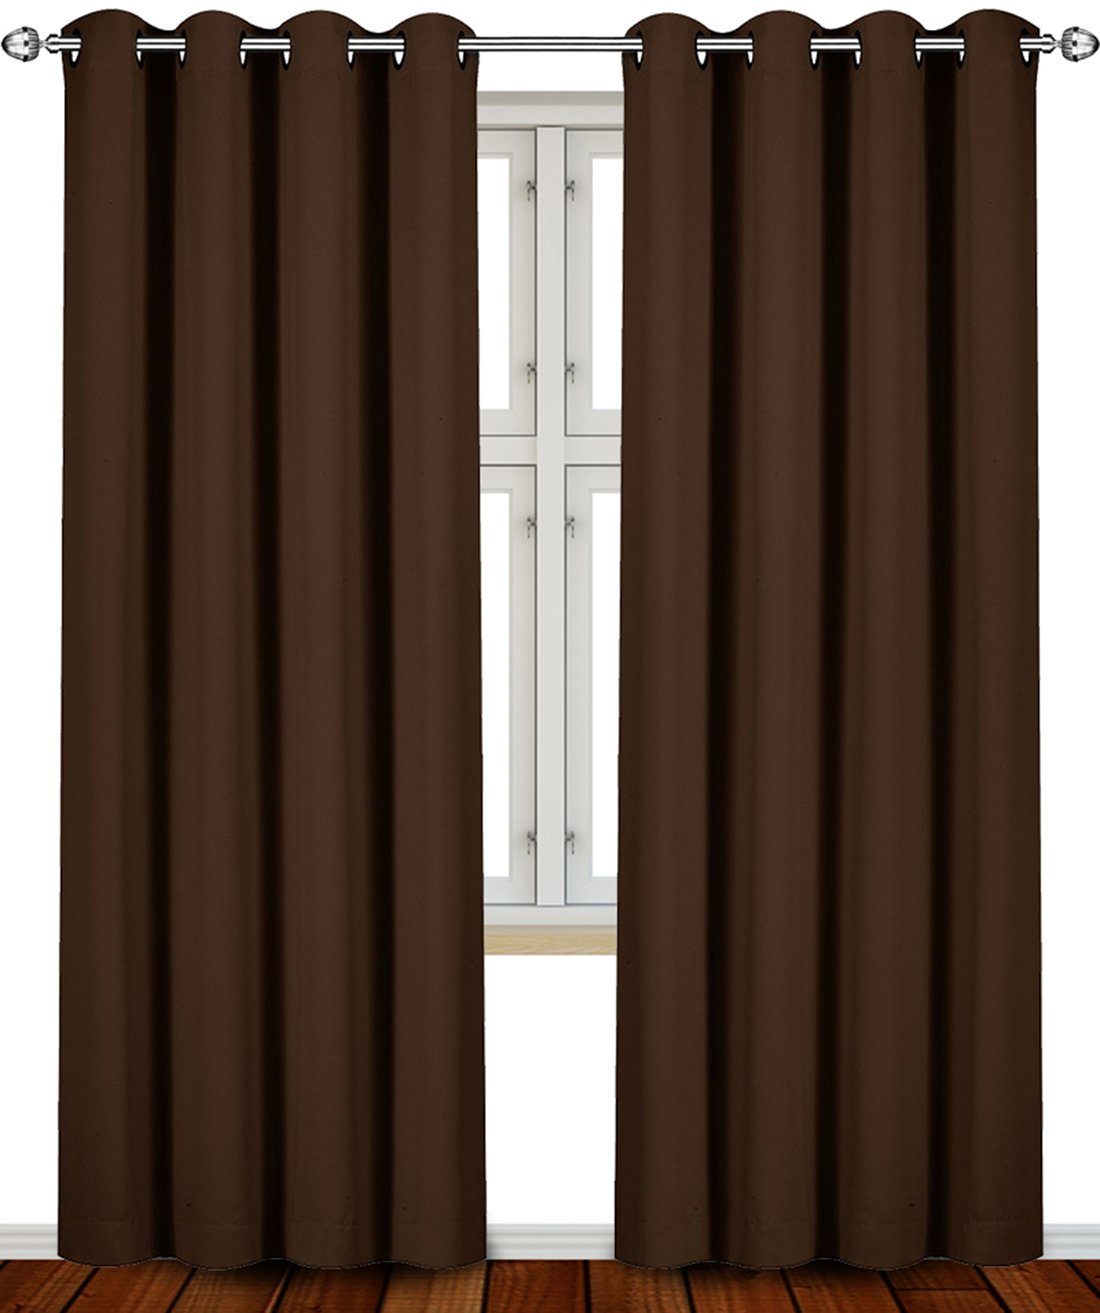 Blackout, Room Darkening Curtains Window Panel Drapes - (Chocolate Color) 2 Panel Set